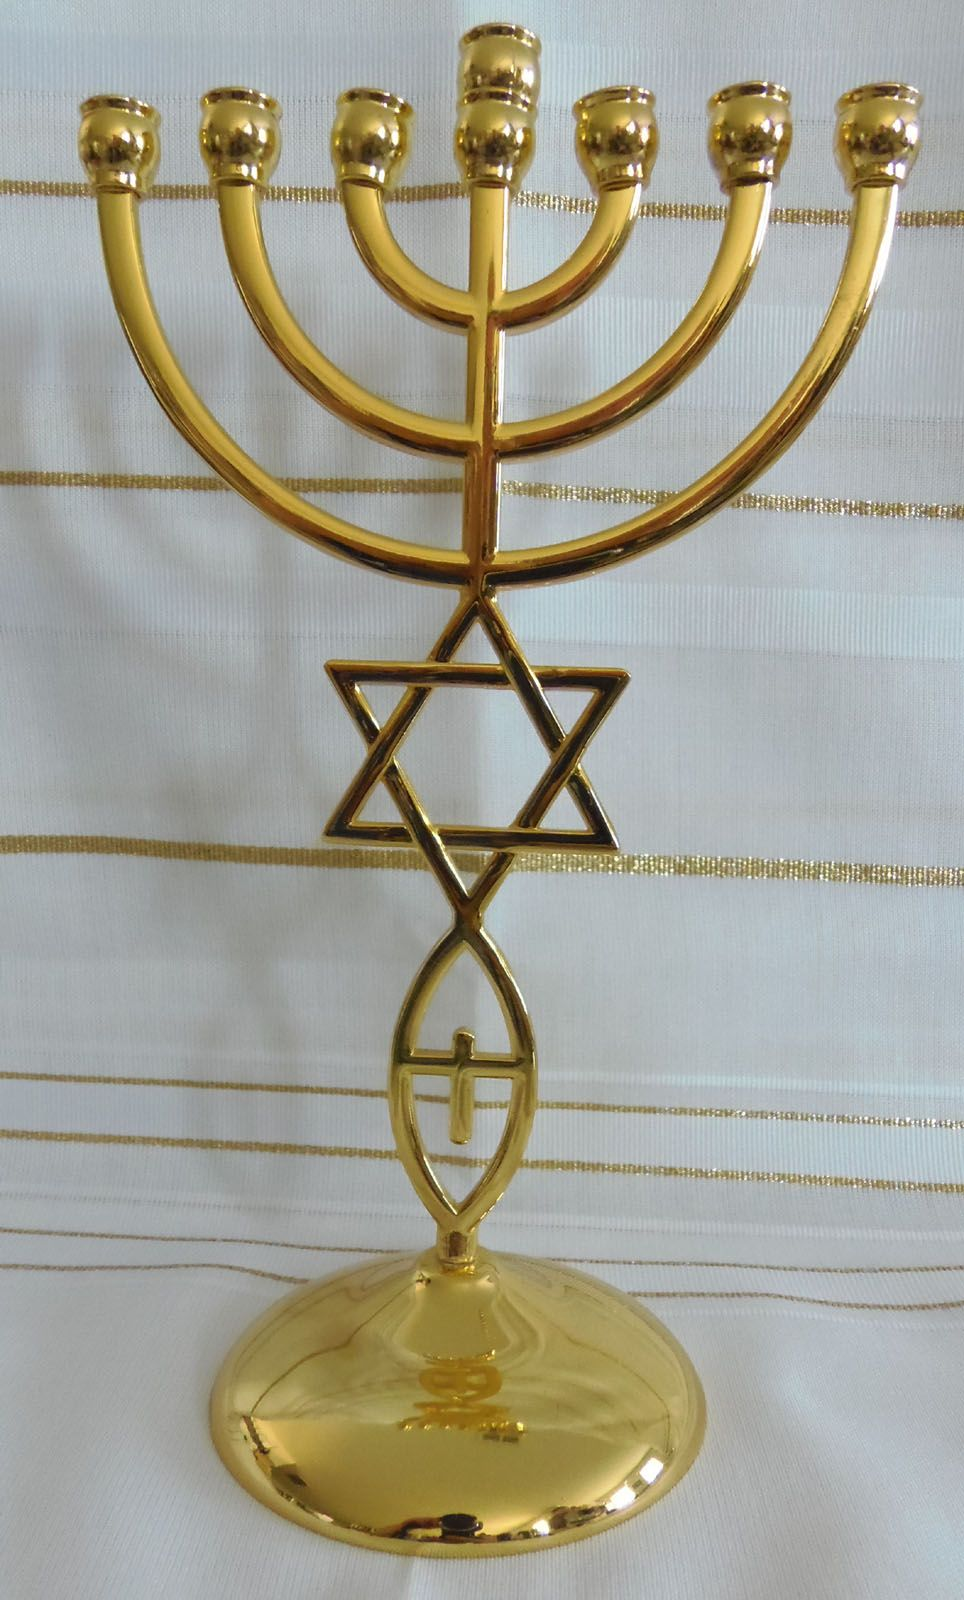 Gold messianic hebraic roots seven branch temple menorah 9 inches gold messianic hebraic roots seven branch temple menorah 9 inches tall biocorpaavc Image collections